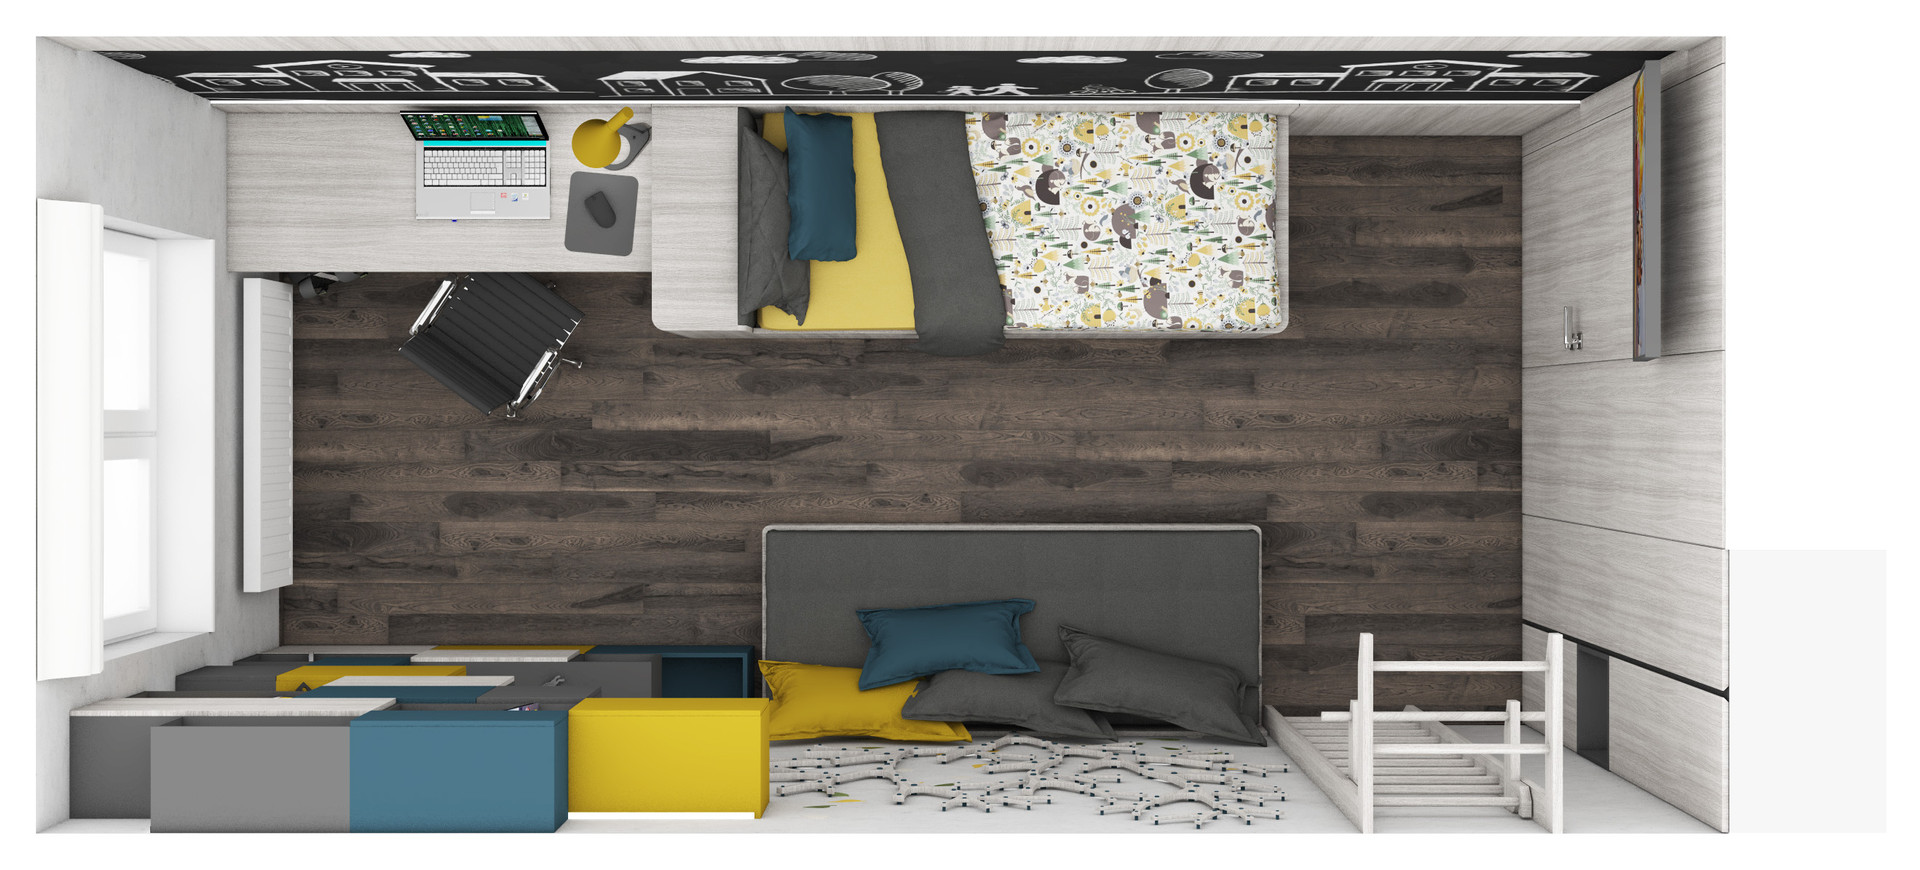 Boy's room - layout | by CADFACE